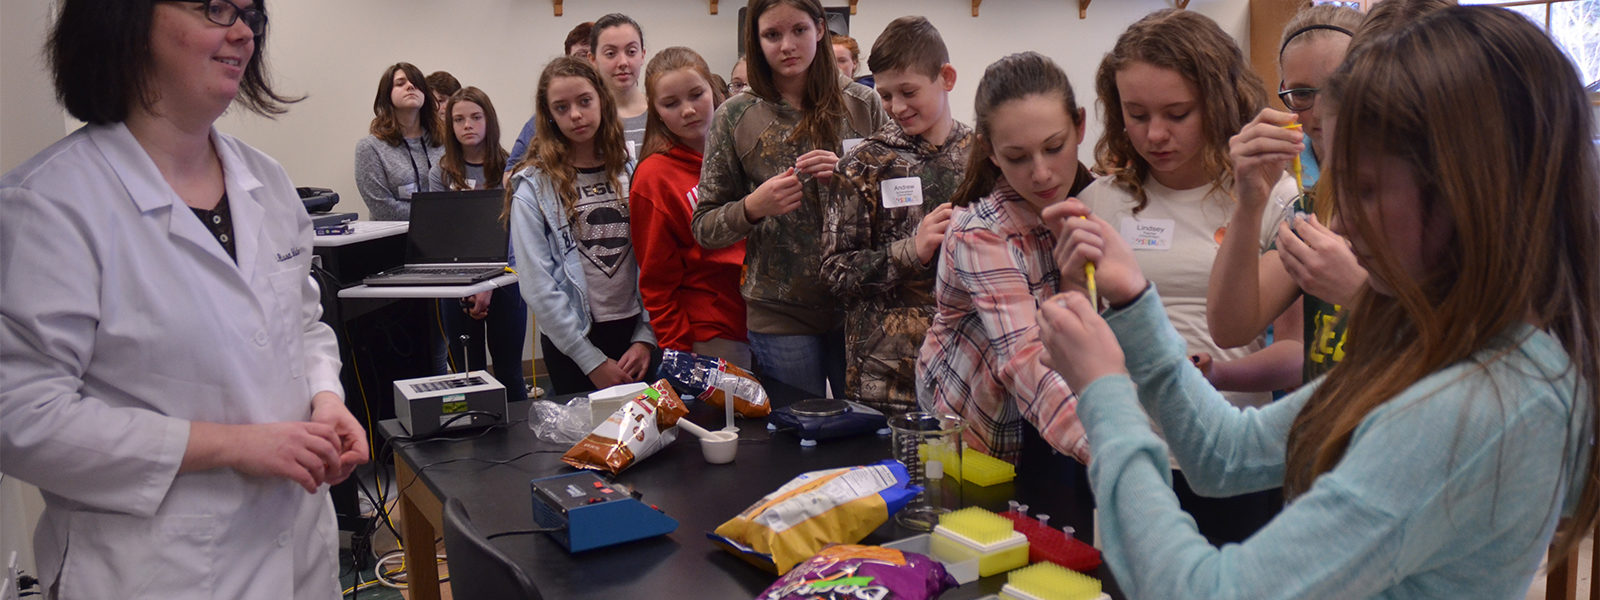 Students line up for testing GMOs at STEM Career Day